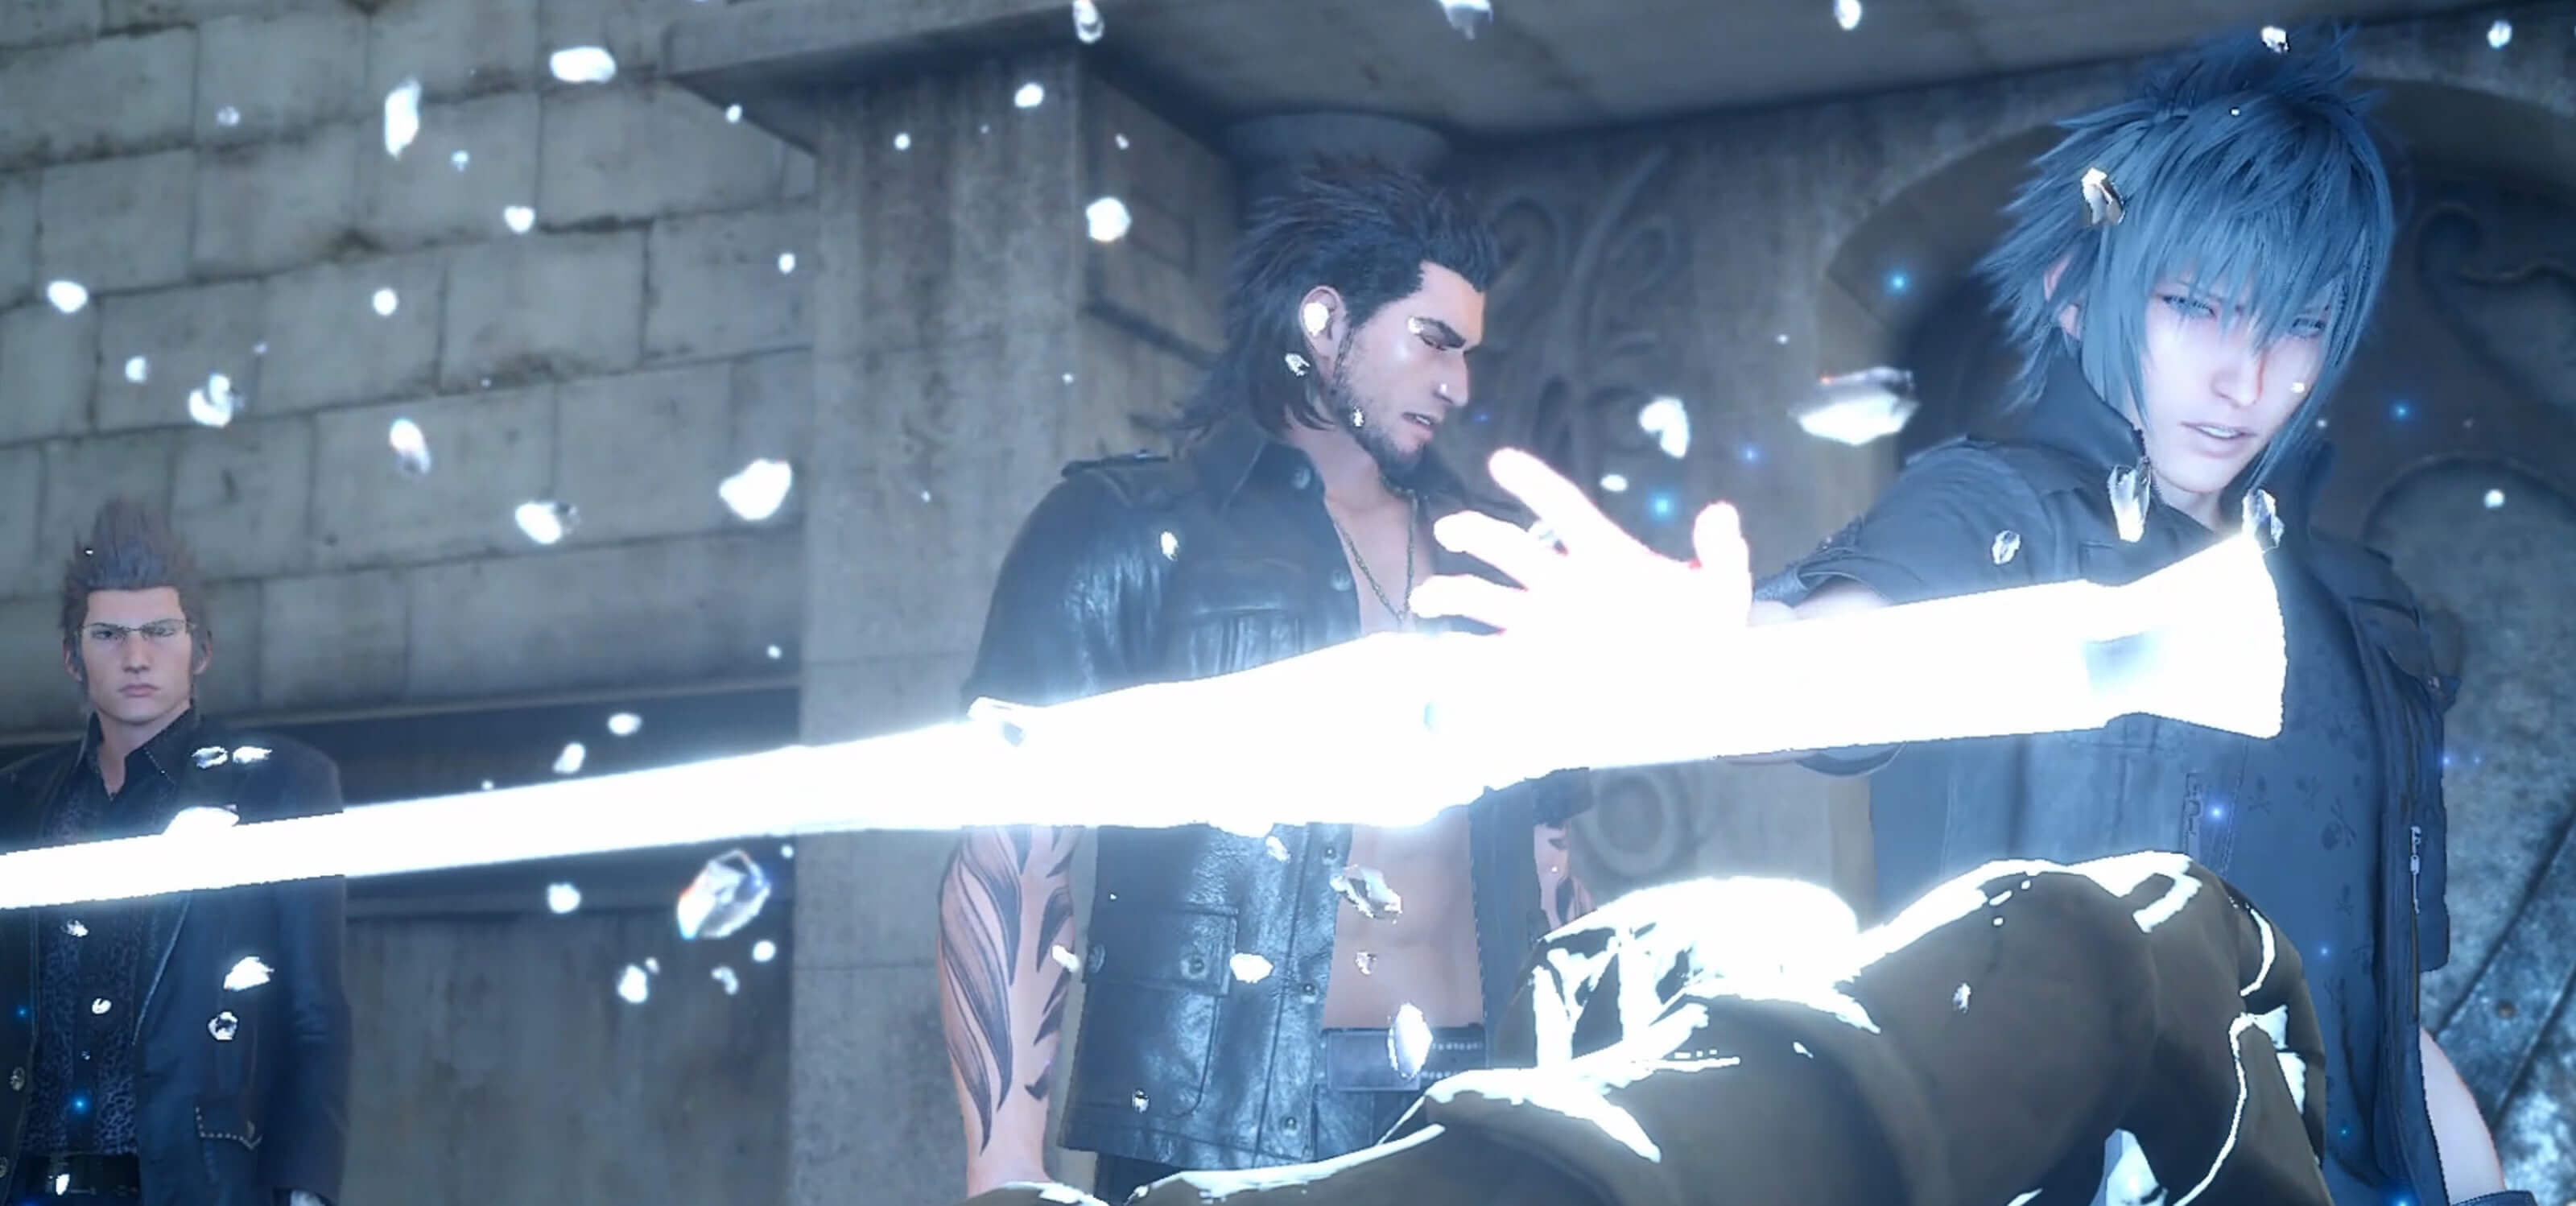 Screenshot from Final Fantasy 15, featuring main character Noctis Lucis Caelum and his friends